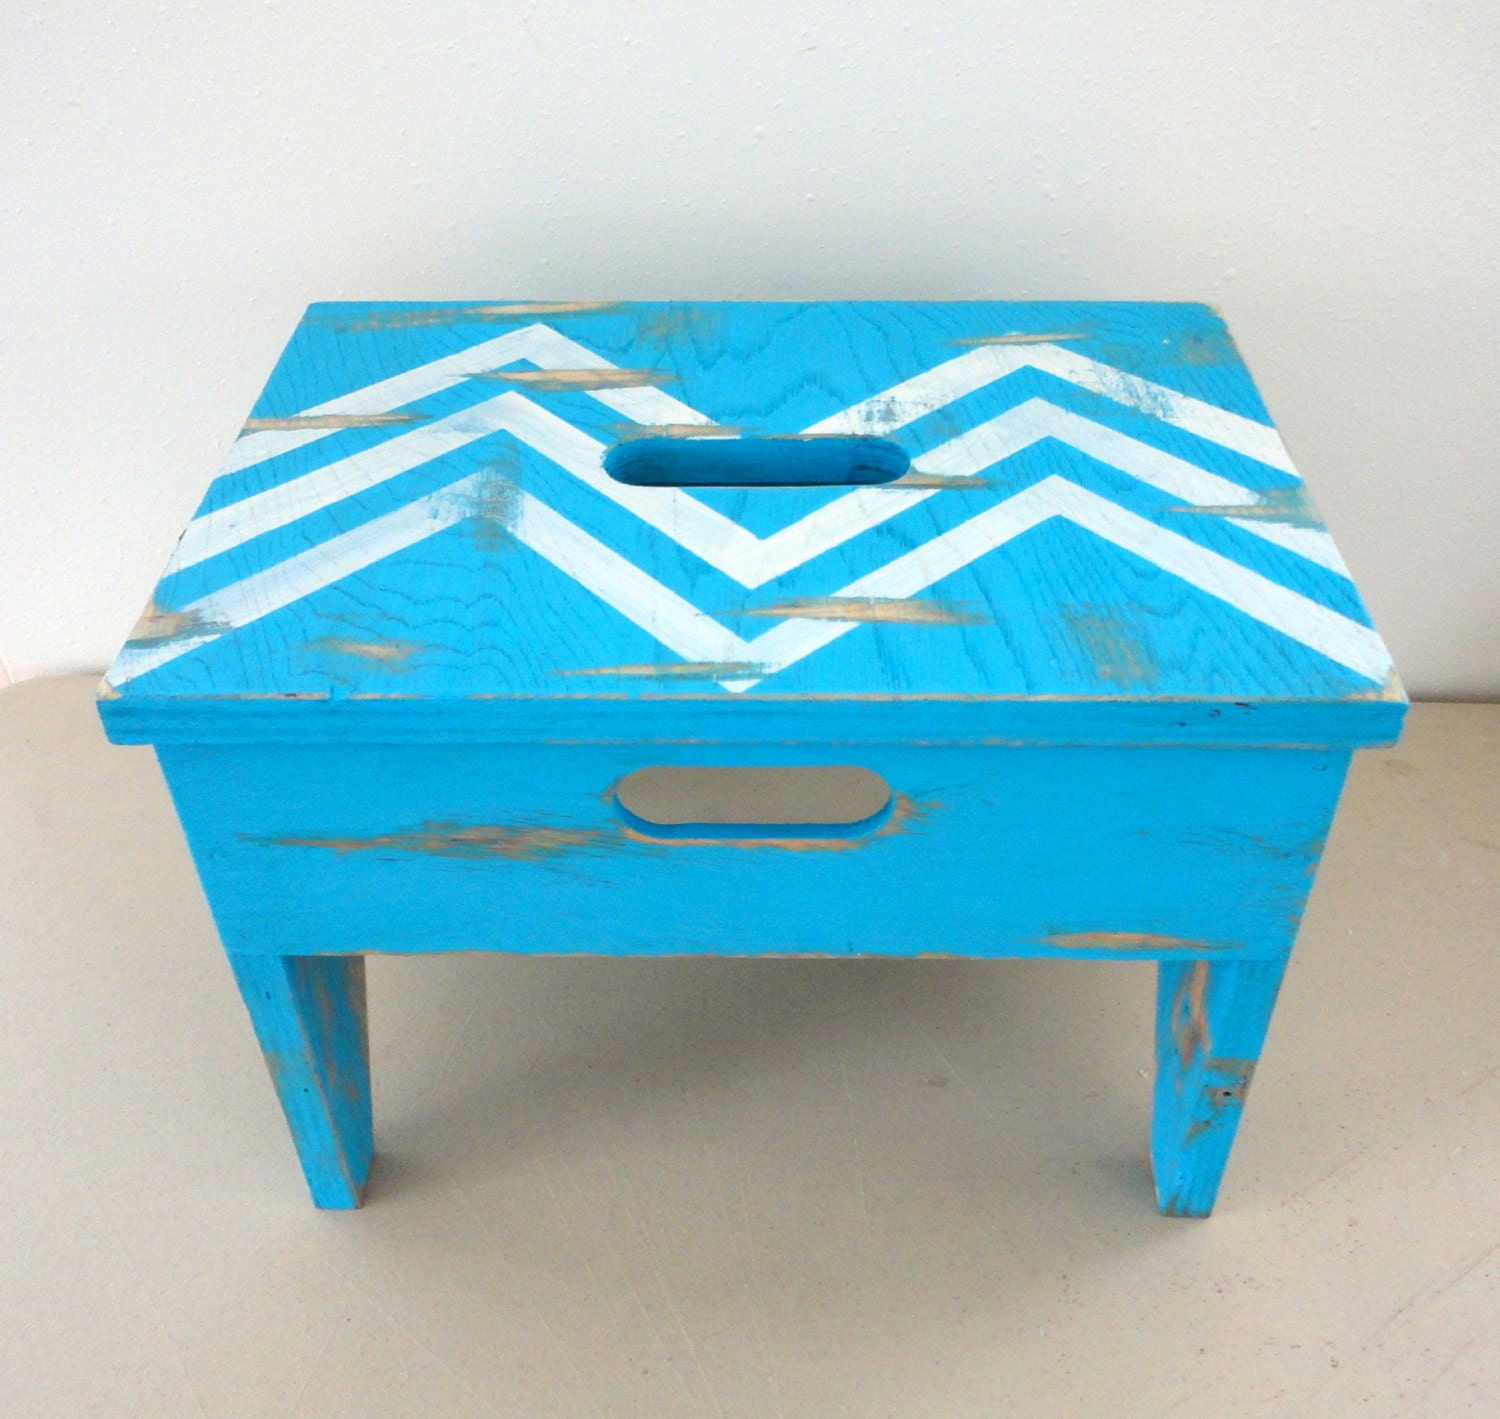 Step Stool Chevron Vintage Upcycled Old Stool Chippy Paint Turquoise and White - KimBuilt